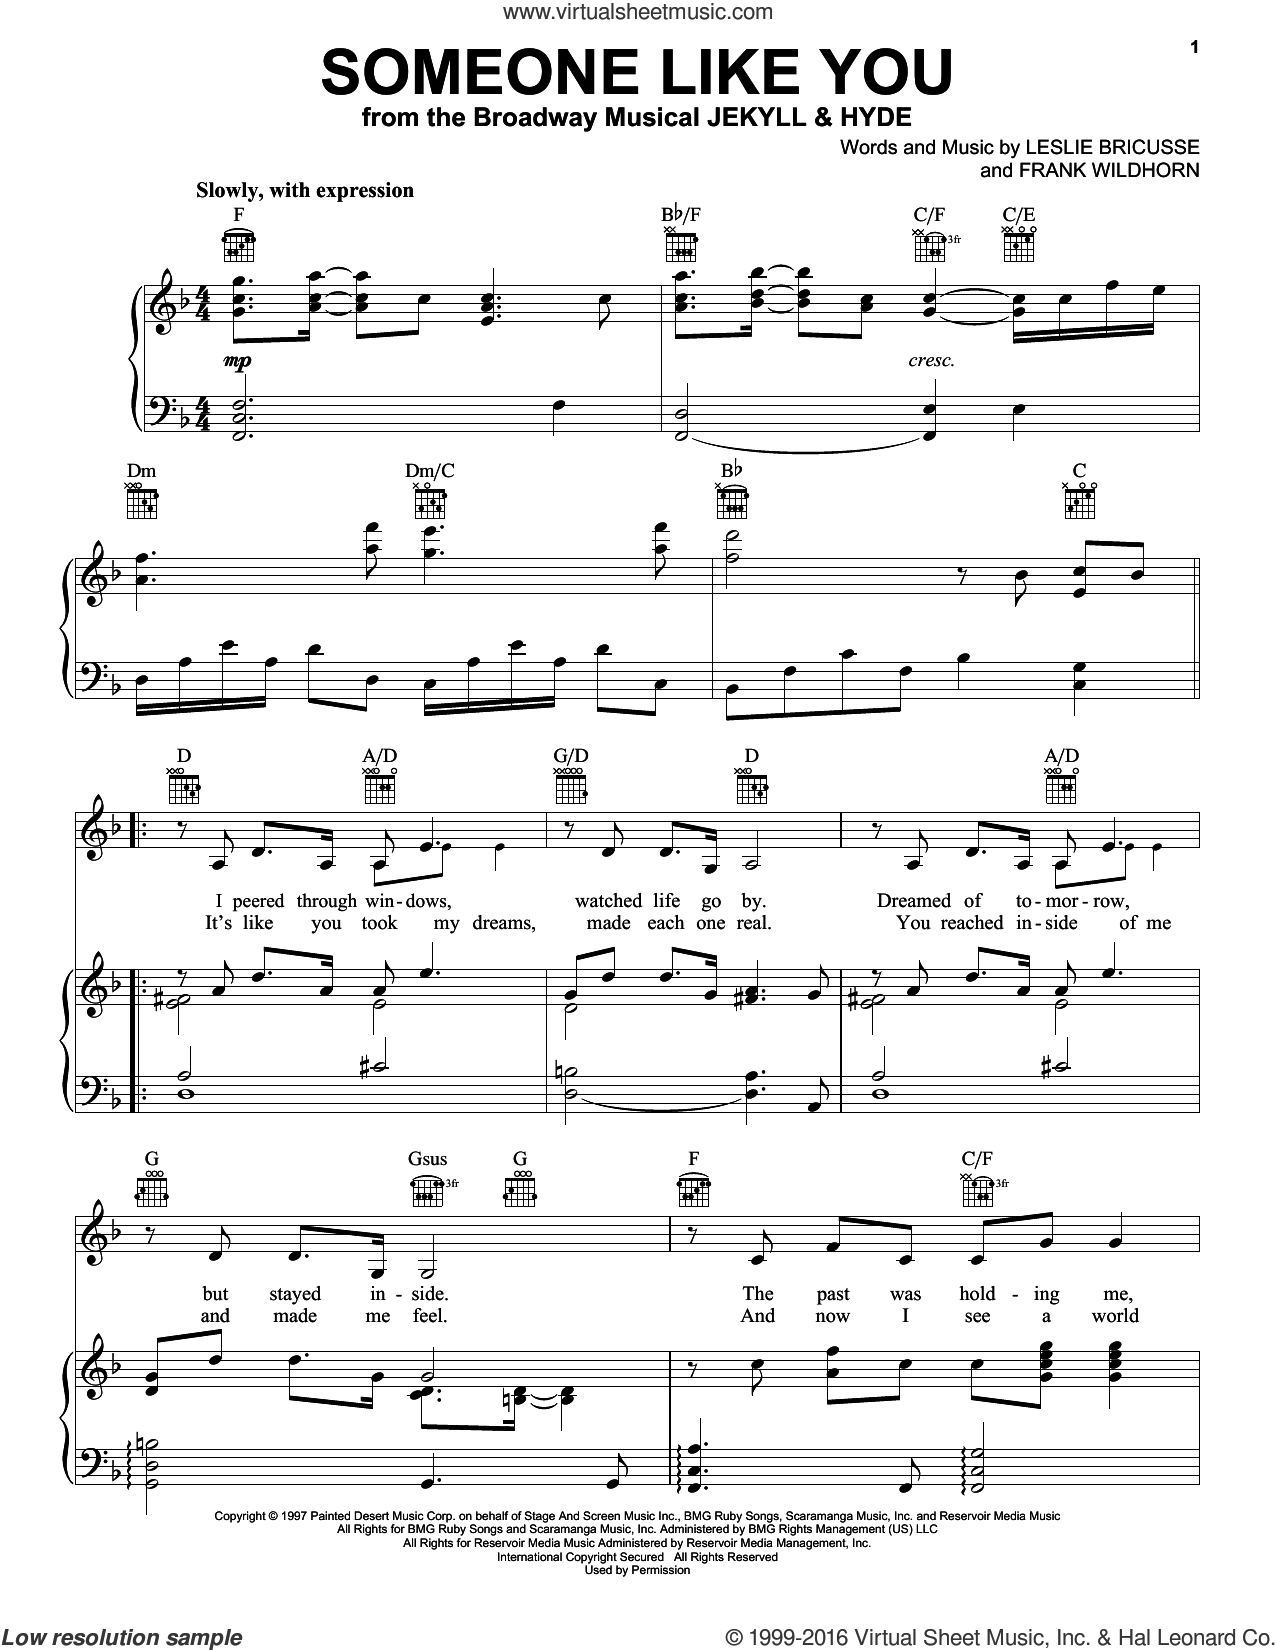 Someone Like You sheet music for voice, piano or guitar by Frank Wildhorn